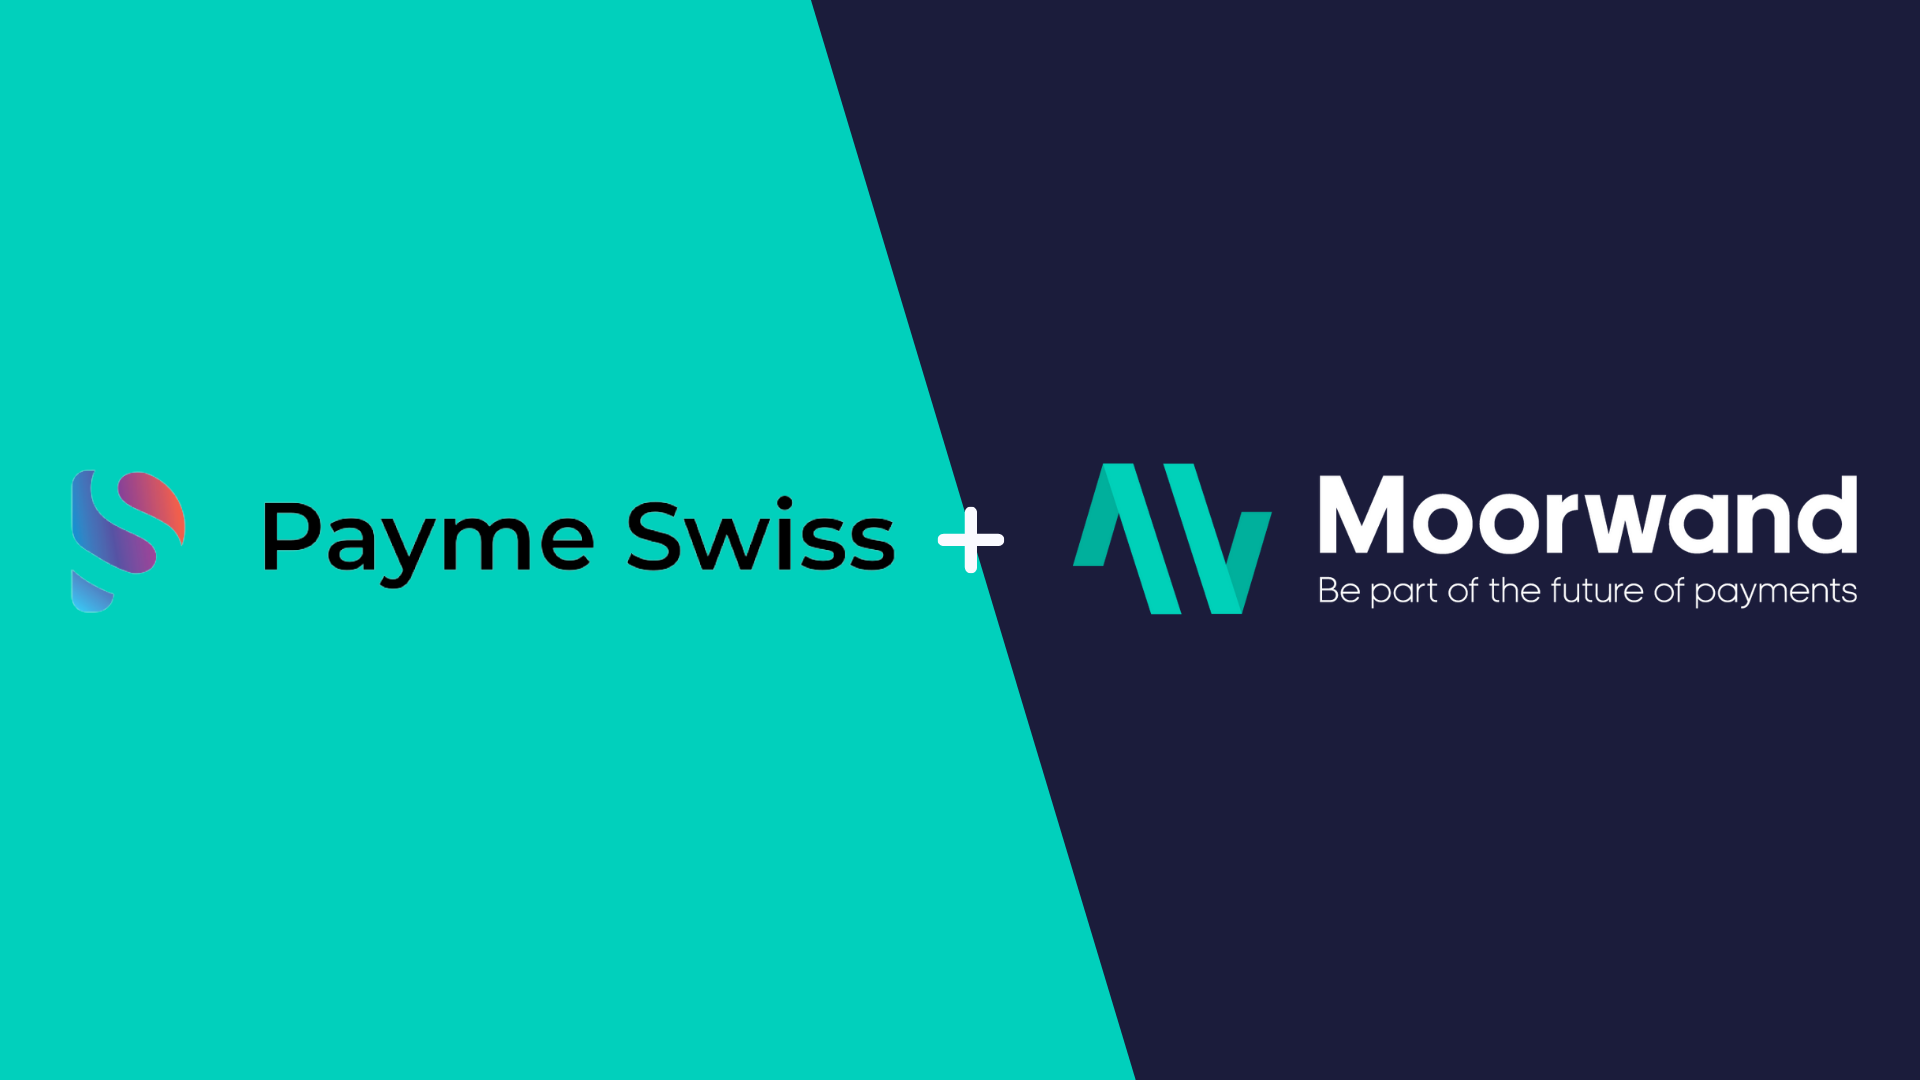 Moorwand partners with Payme Swiss to revolutionise card and wearable payments